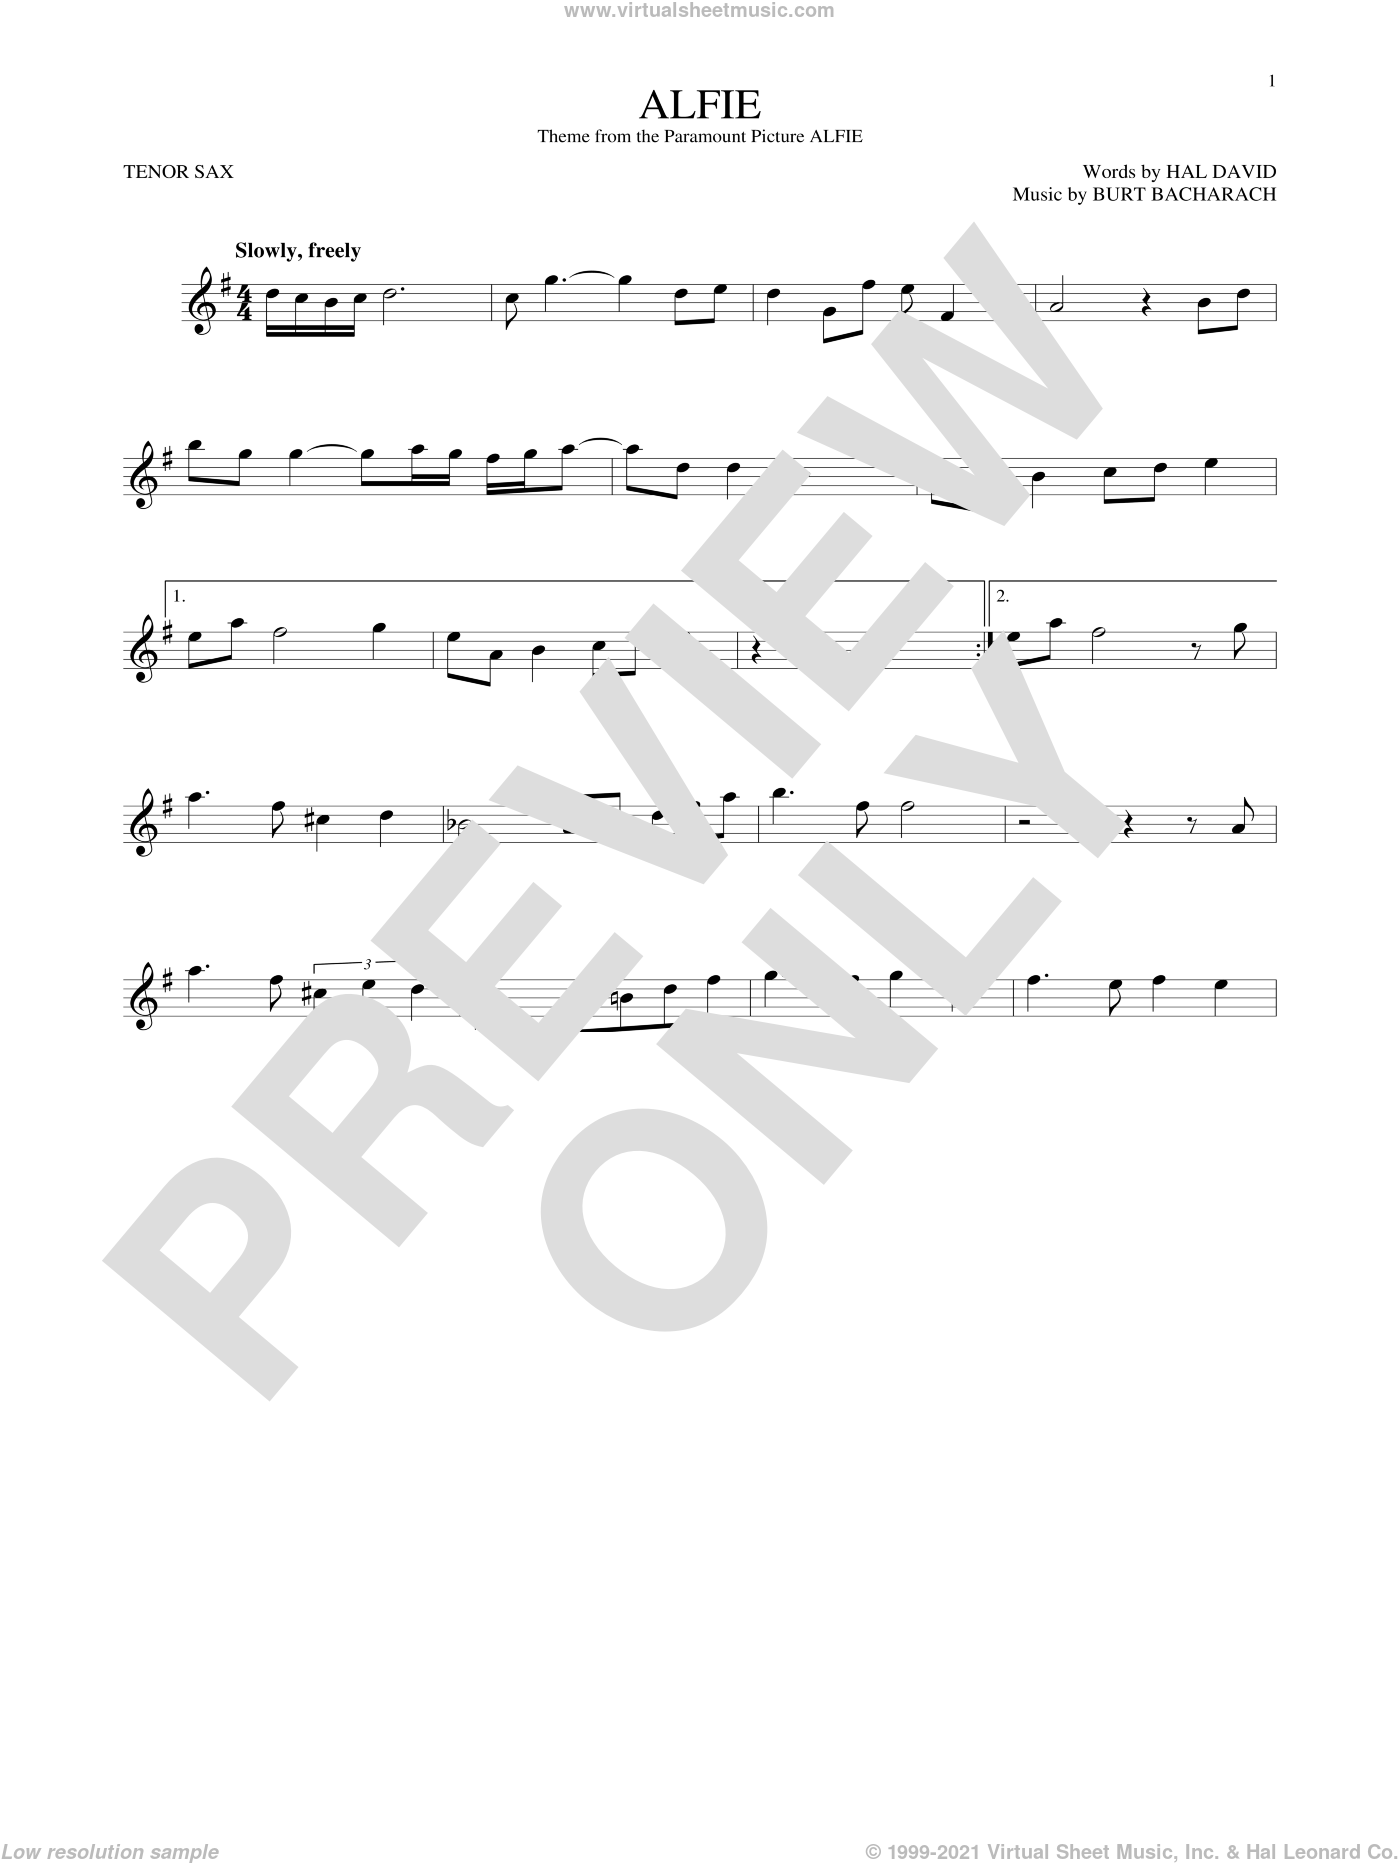 Alfie sheet music for tenor saxophone solo by Dionne Warwick, Cher, Miscellaneous, Sonny Rollins, Stevie Wonder, Burt Bacharach and Hal David, intermediate skill level